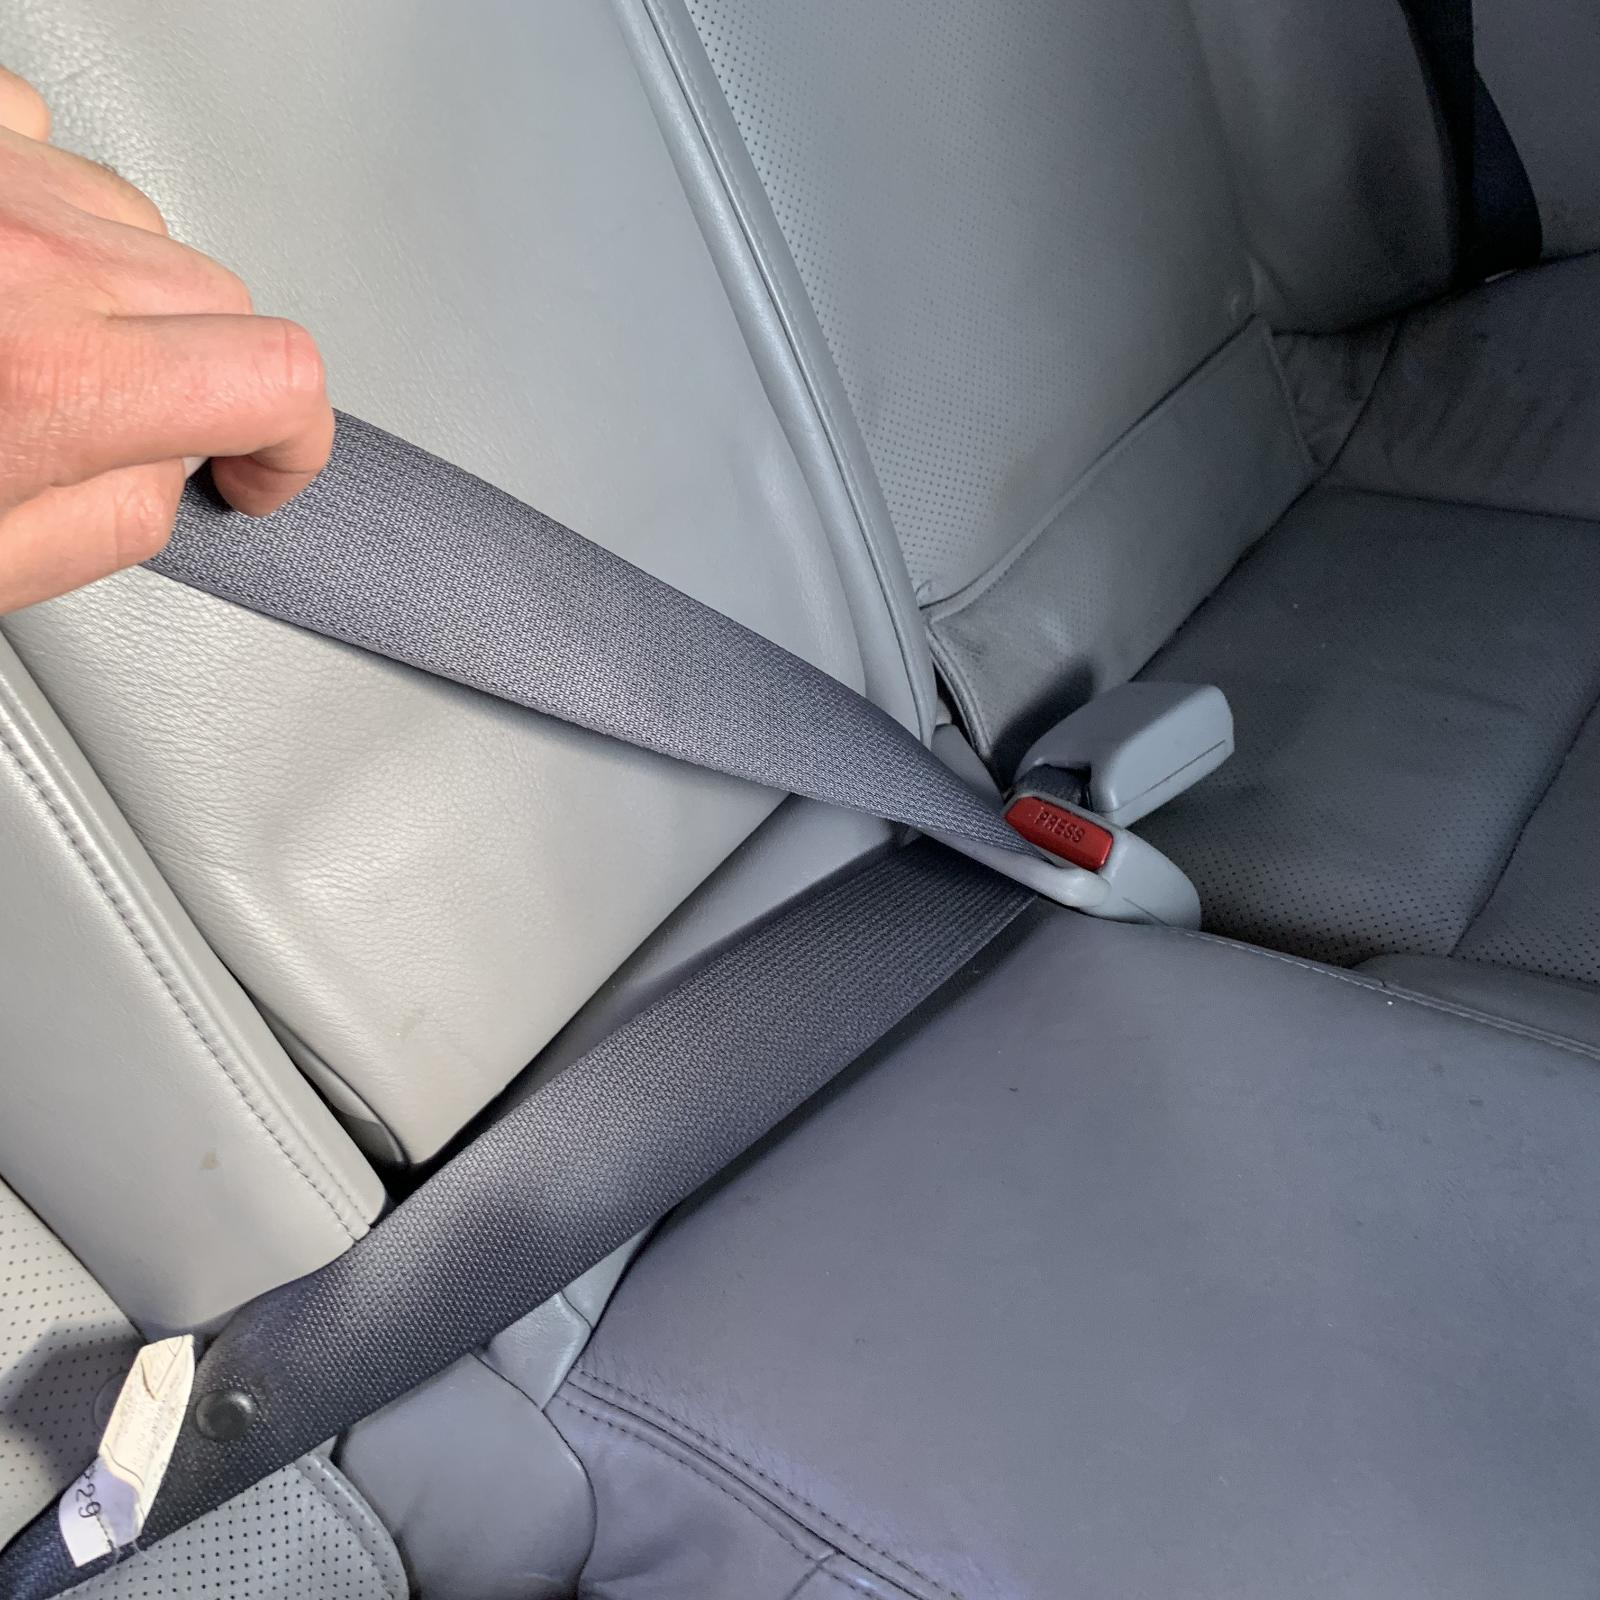 LEXUS IS250/IS250C, Seatbelt/Stalk, CENTRE REAR, SEAT BELT STALK ONLY, BLACK, SEDAN, GSE20R, 11/05-09/08